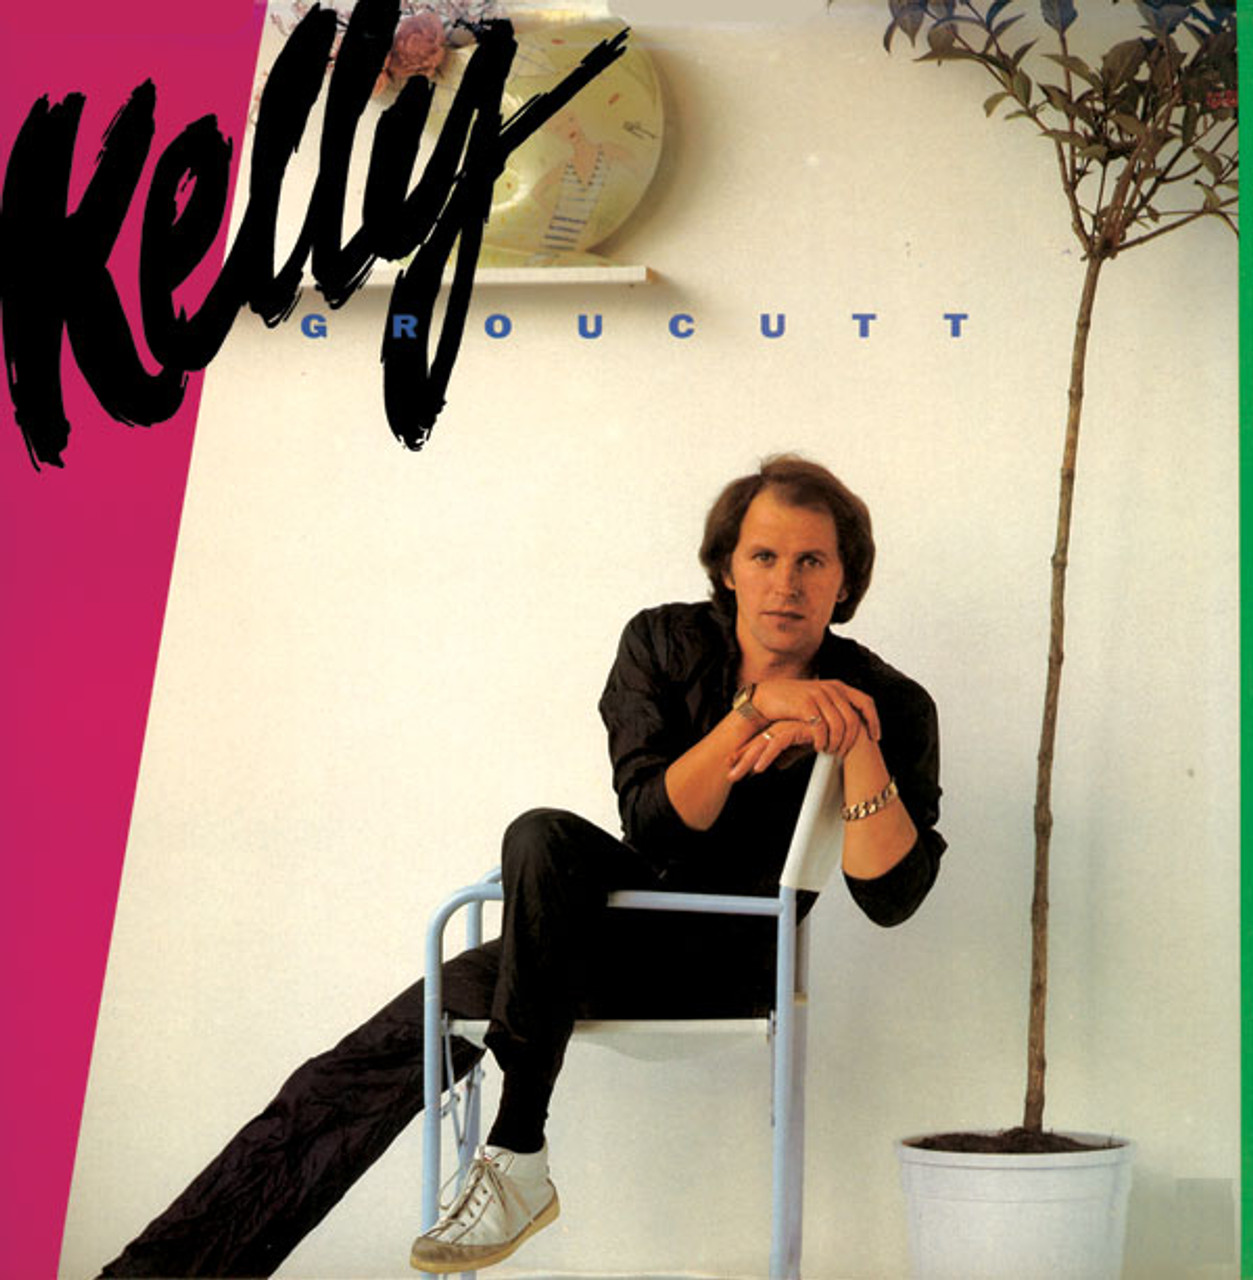 Kelly by Kelly Groucutt available on CD